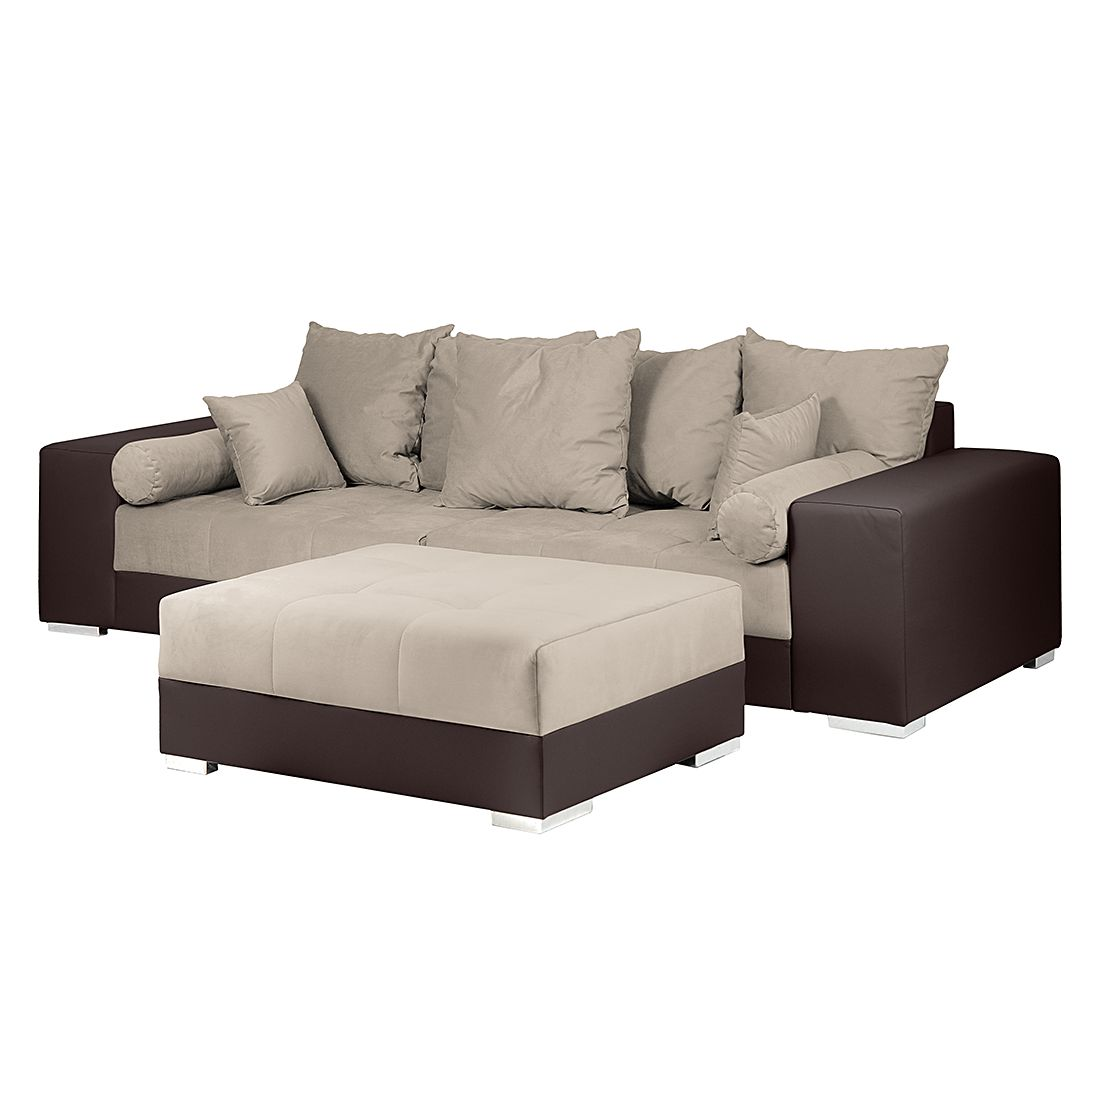 bigsofa aaron kunstleder braun samtstoff taupe mit hocker modoform g nstig online kaufen. Black Bedroom Furniture Sets. Home Design Ideas